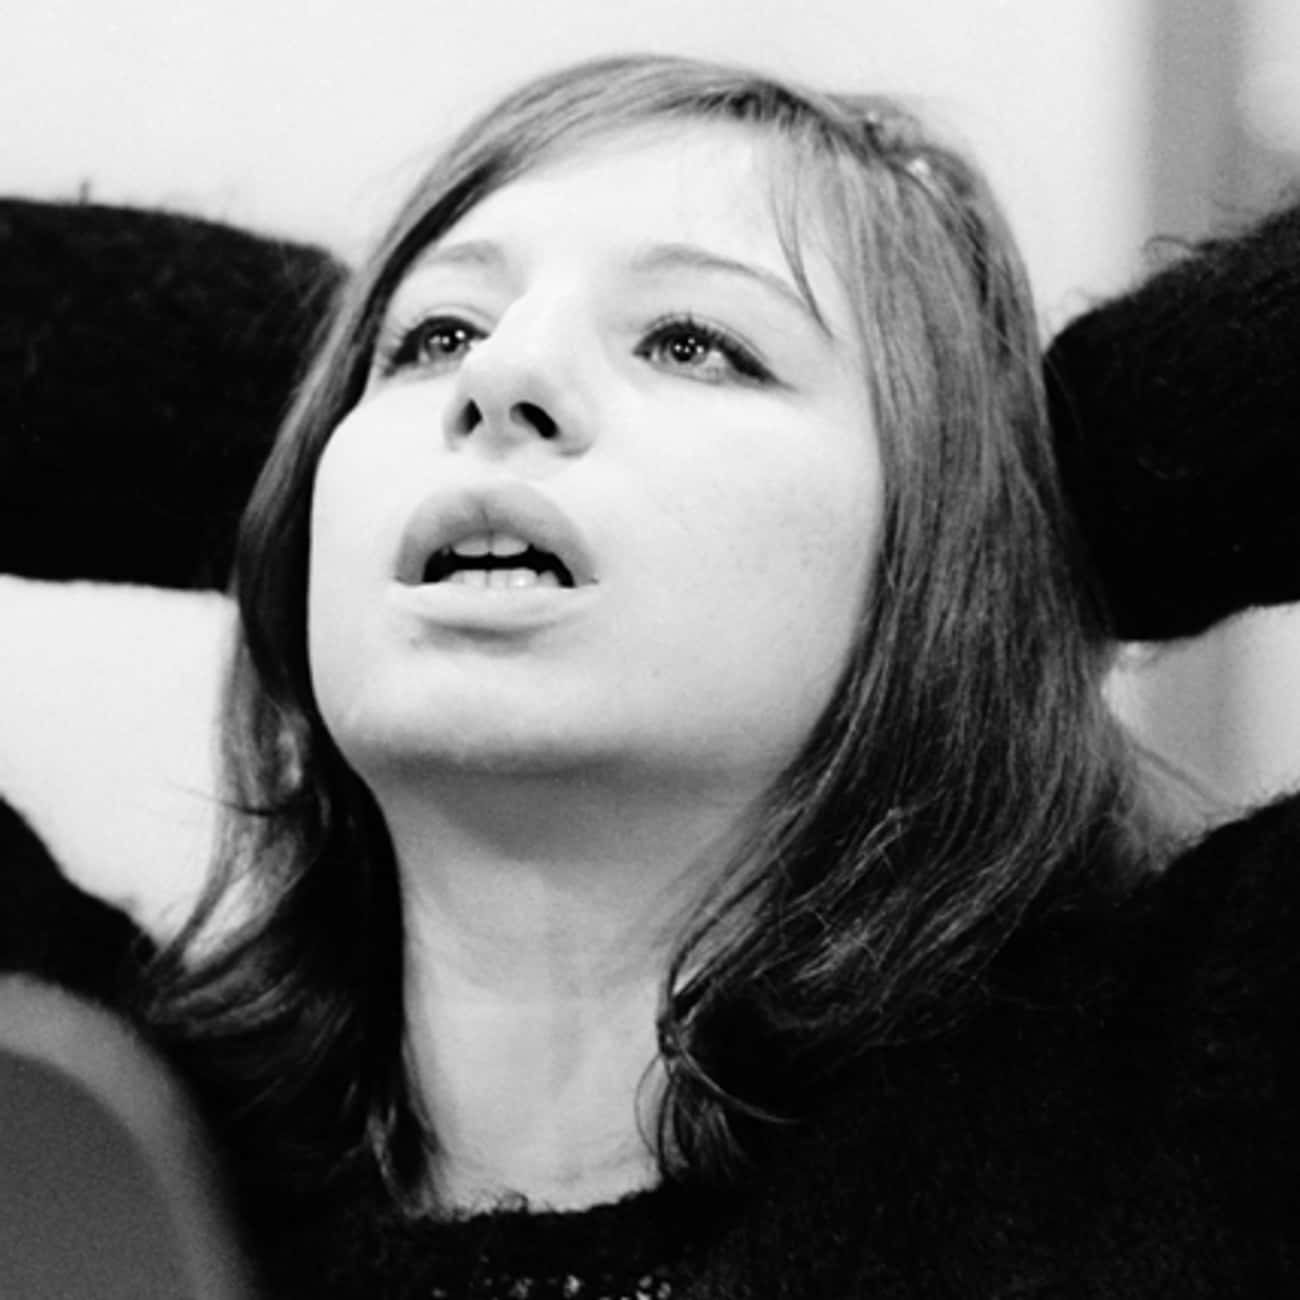 Young Barbra Streisand in Blac is listed (or ranked) 3 on the list 20 Pictures of Young Barbra Streisand